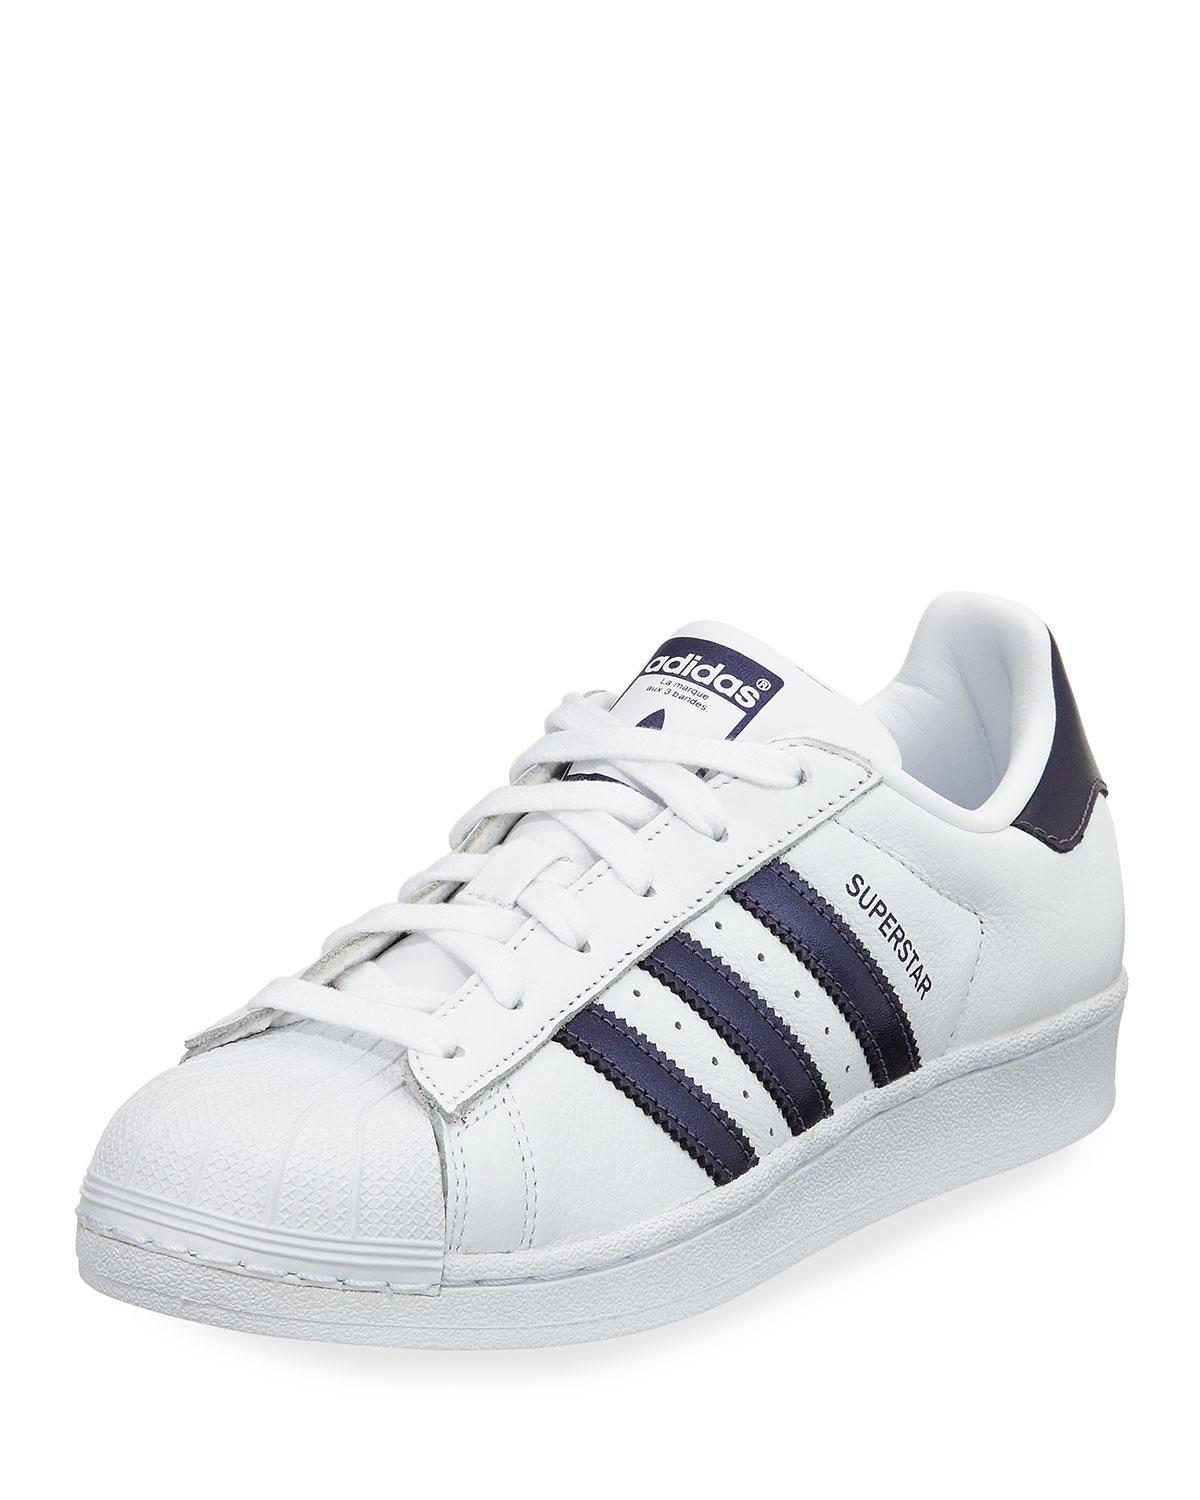 online retailer 69368 2433b adidas. Men s Superstar Lace-up 3-stripes® Sneakers.  80 From Neiman Marcus